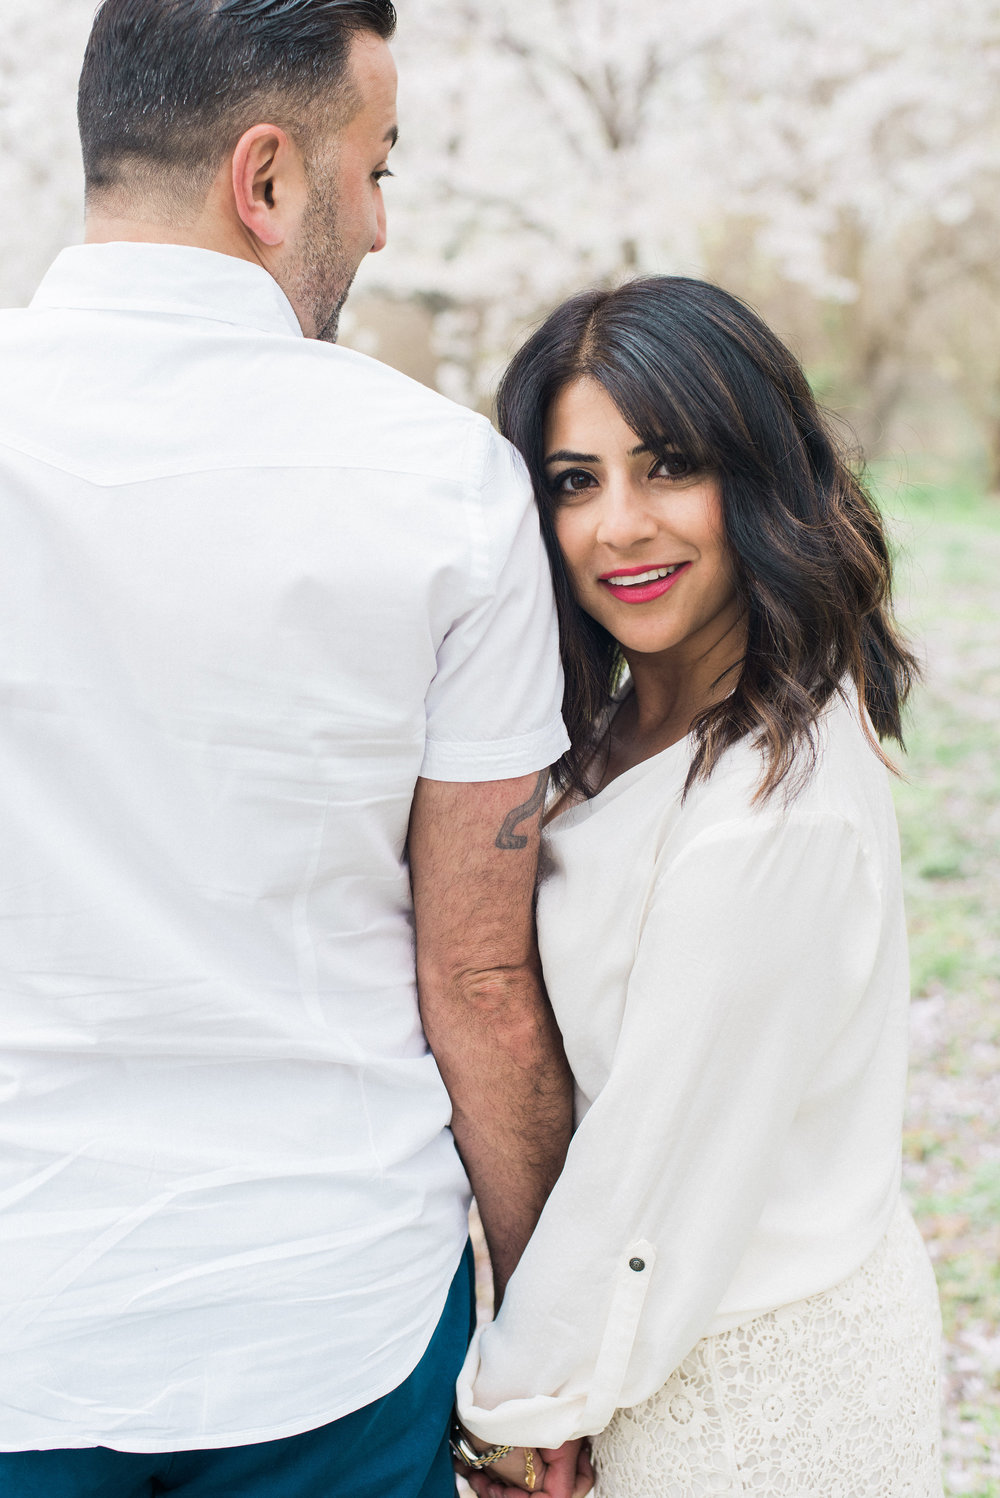 washington dc cherry blossom engagement session fine art wedding photographer lissa ryan photography